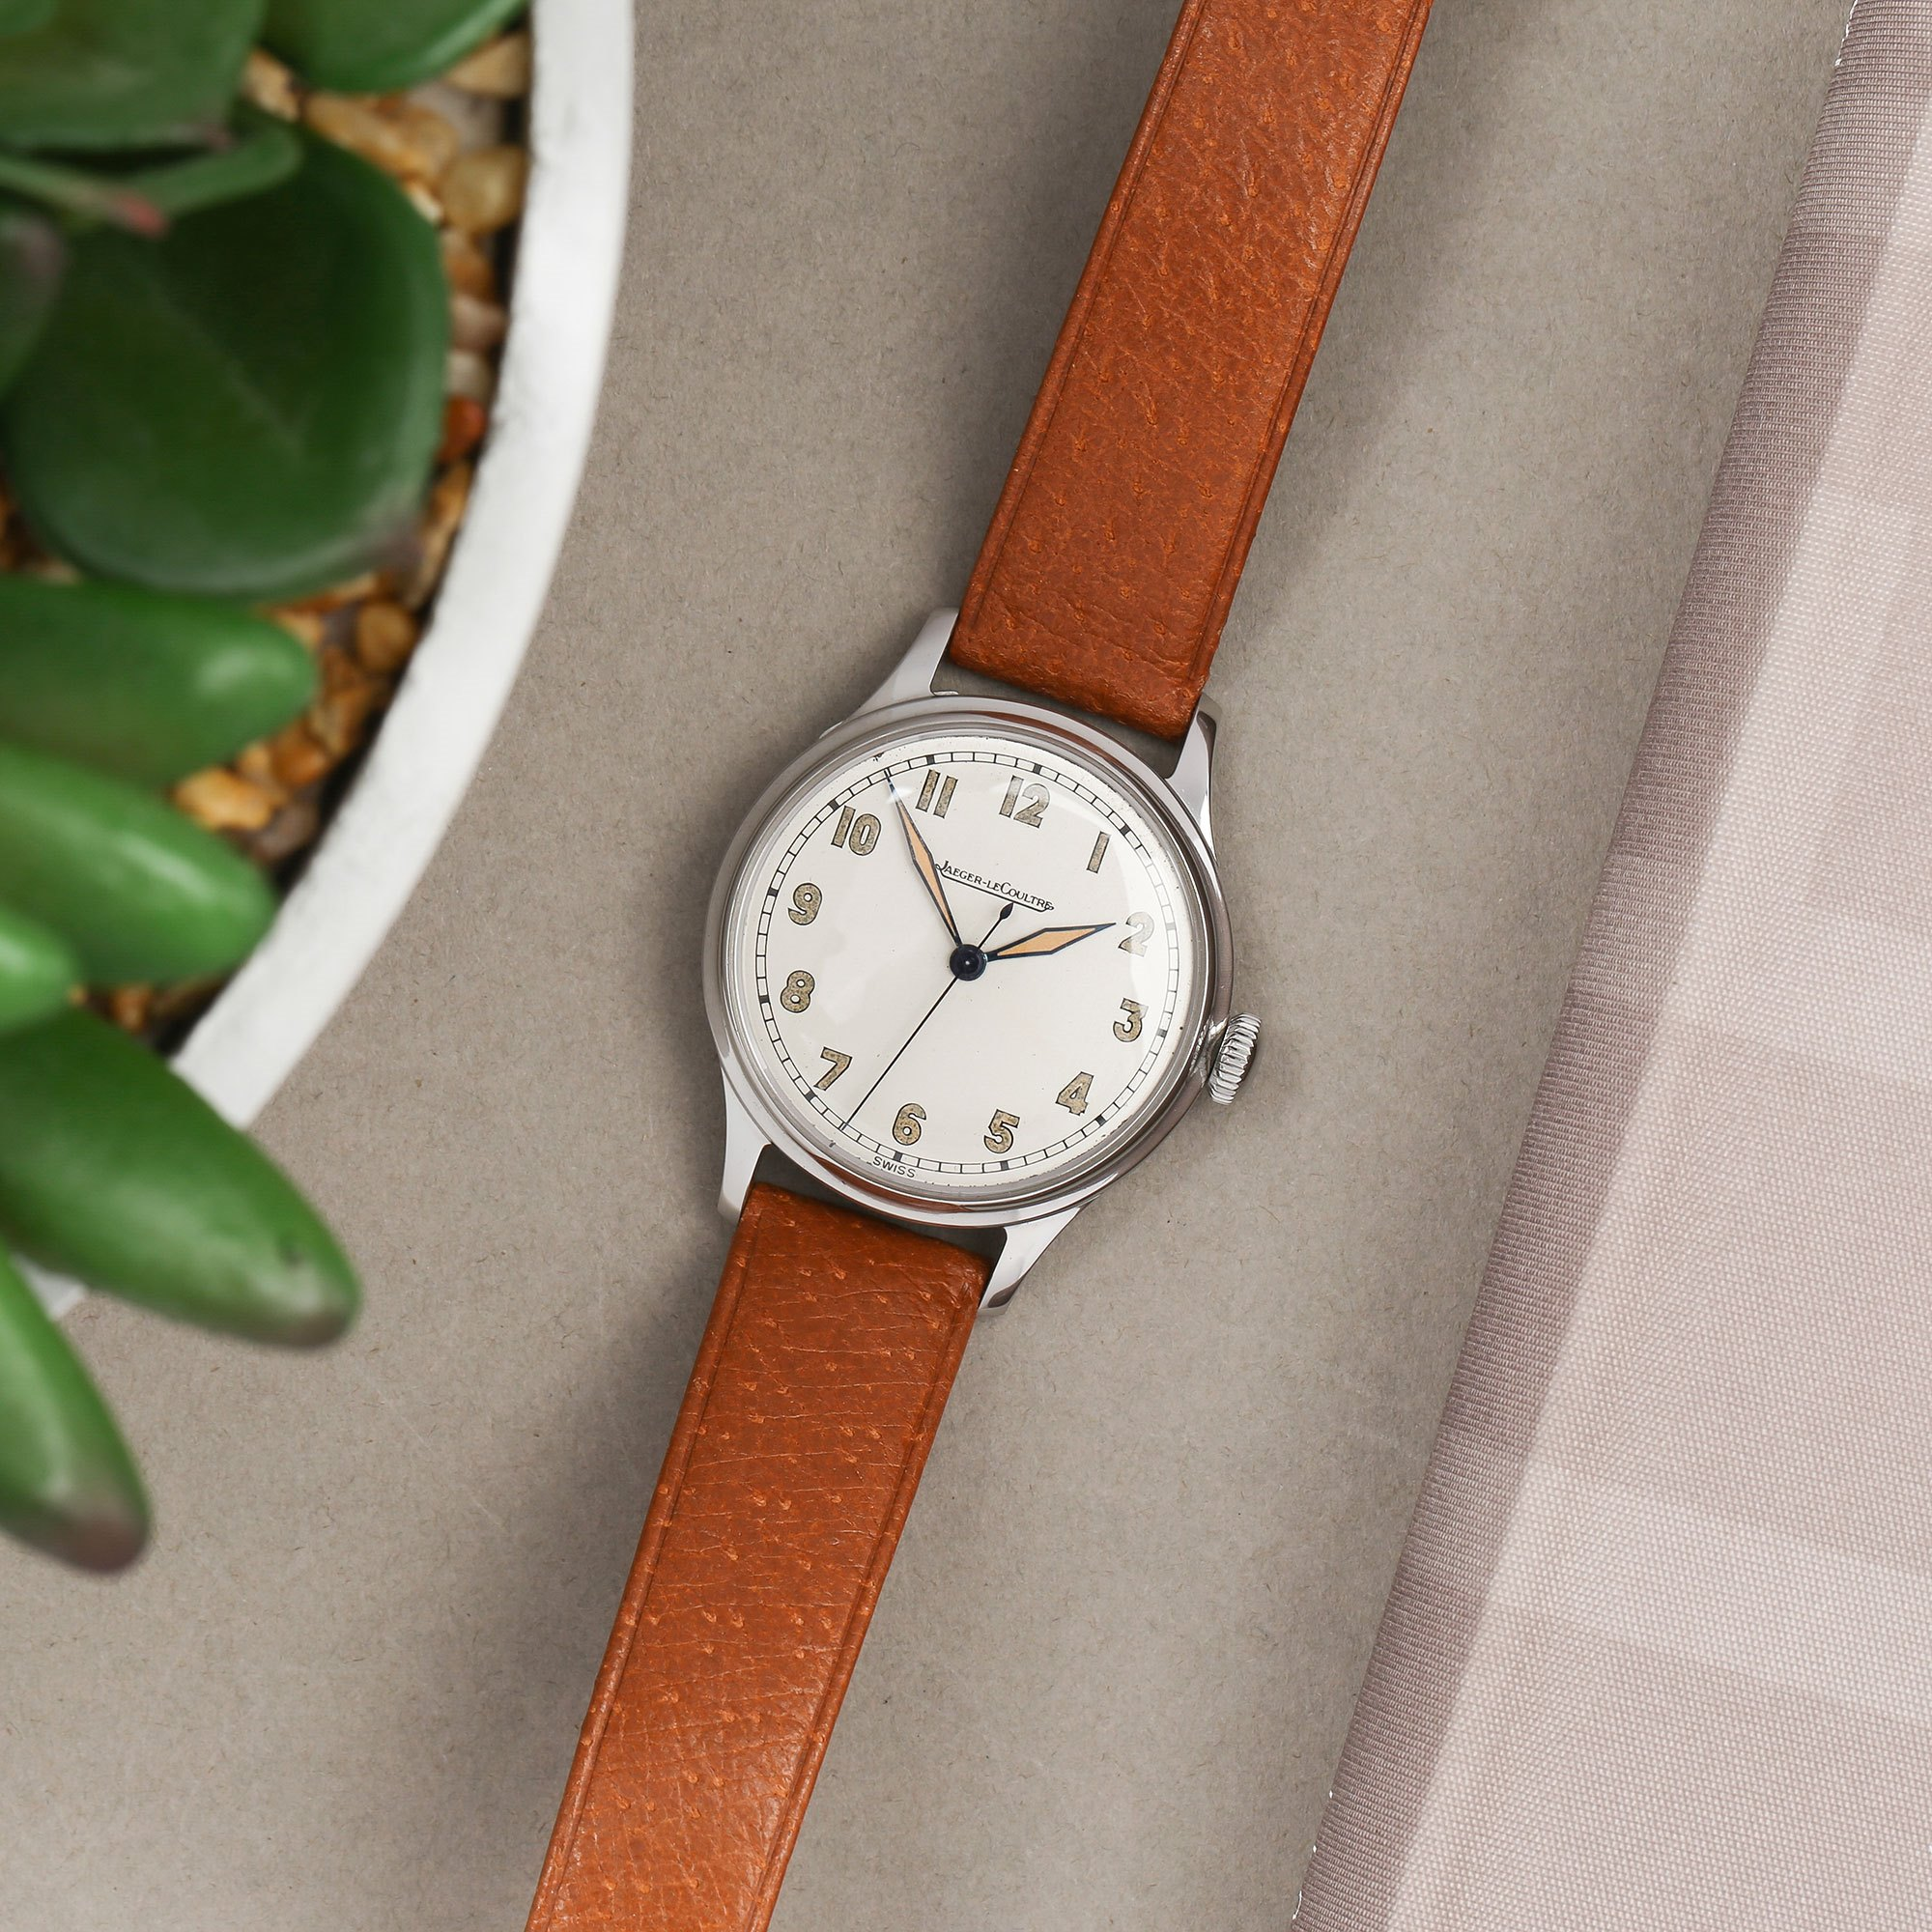 Jaeger-LeCoultre Vintage Stainless Steel P.478